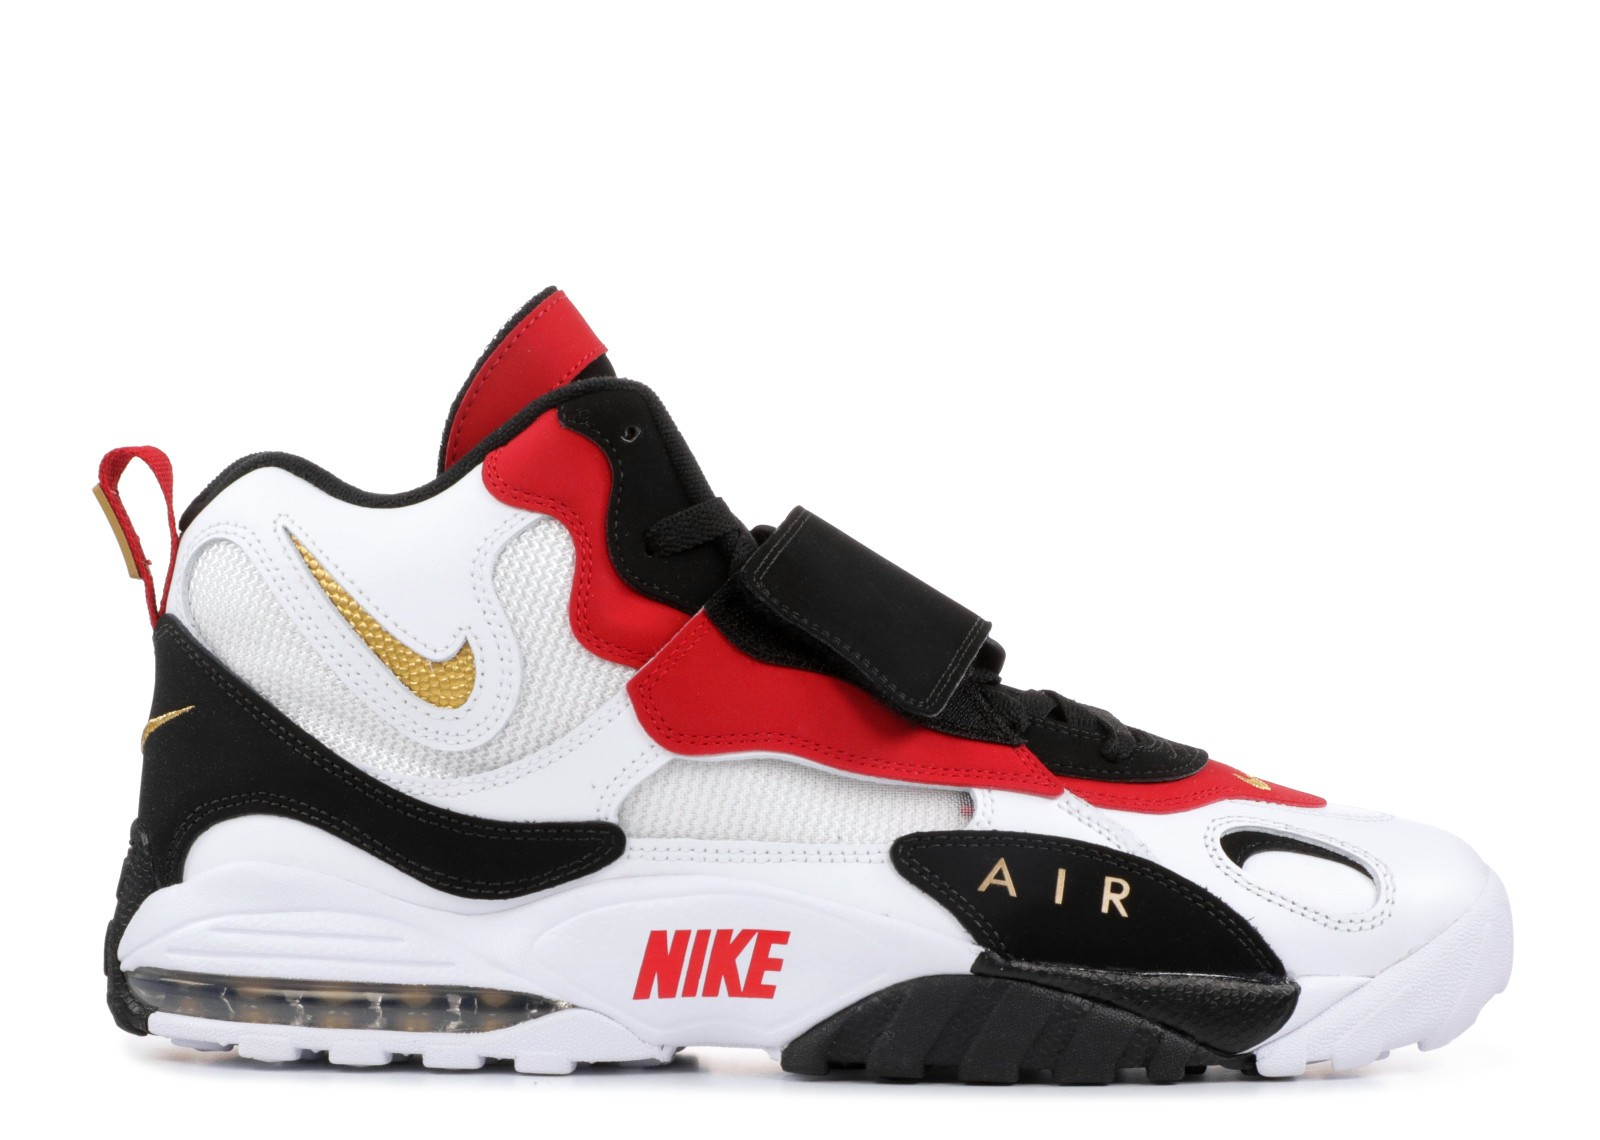 best sneakers 1a478 6c846 Prev Nike Air Max Speed Turf 49ers White Black Gym Red 525225-101